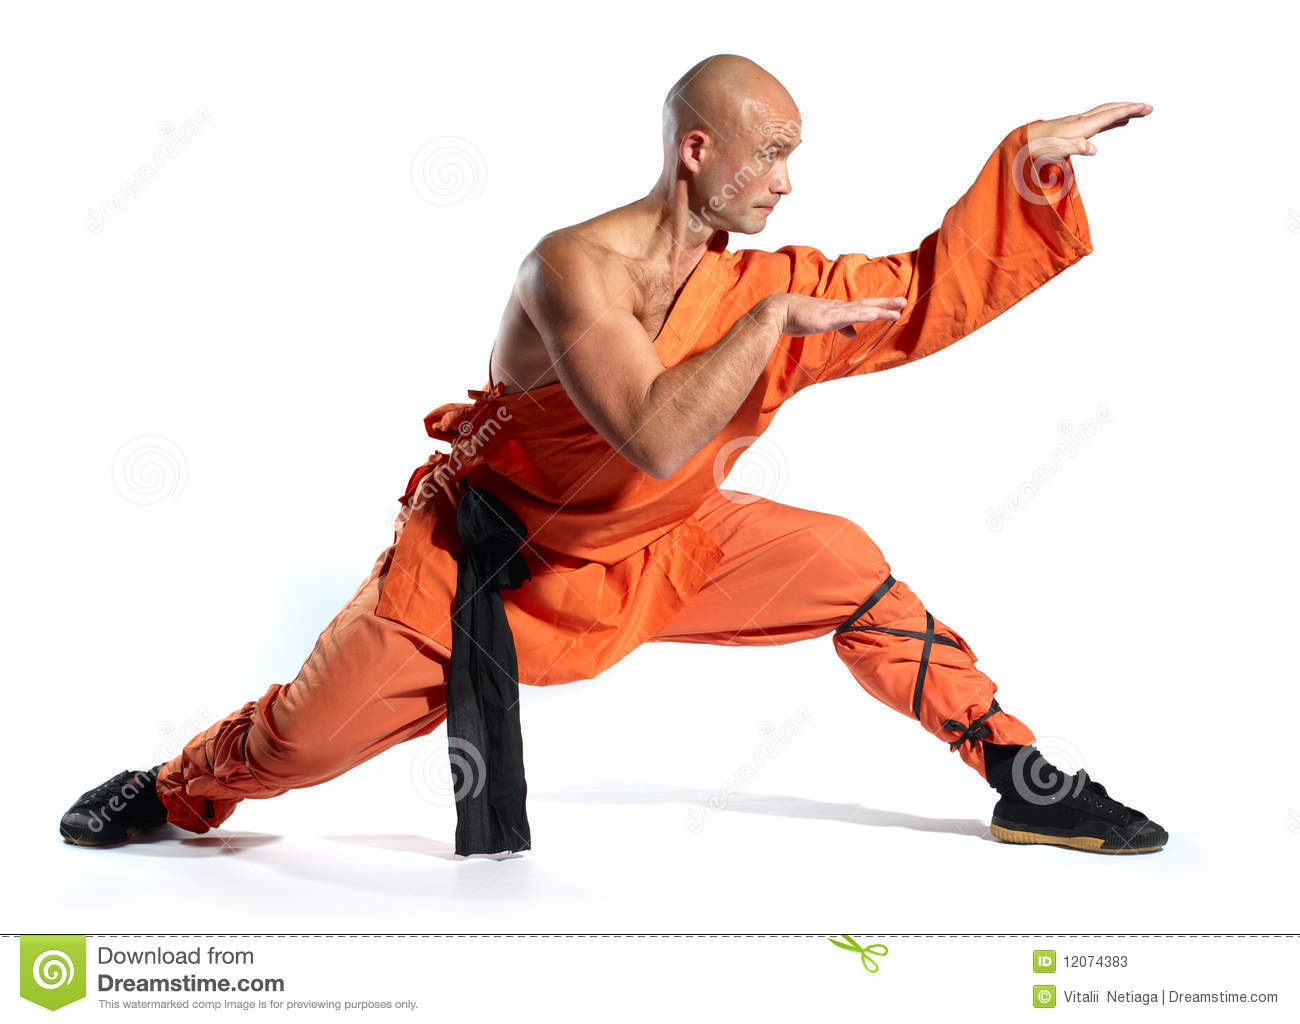 Shaolin Warrior Monk Stock Photos - Image: 12074383